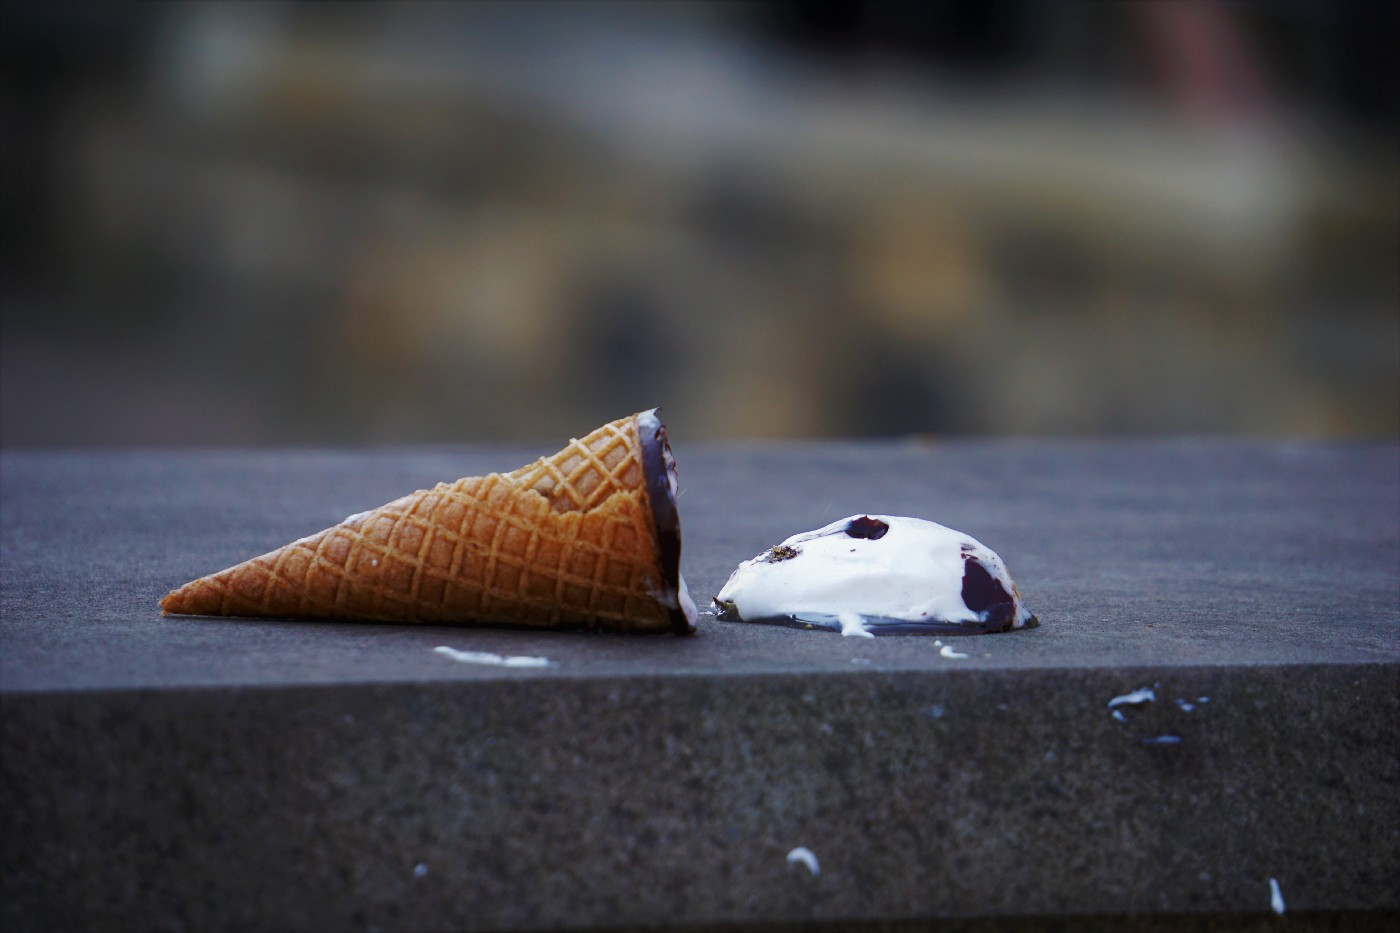 Ice cream cone melts where someone accidentally dropped it